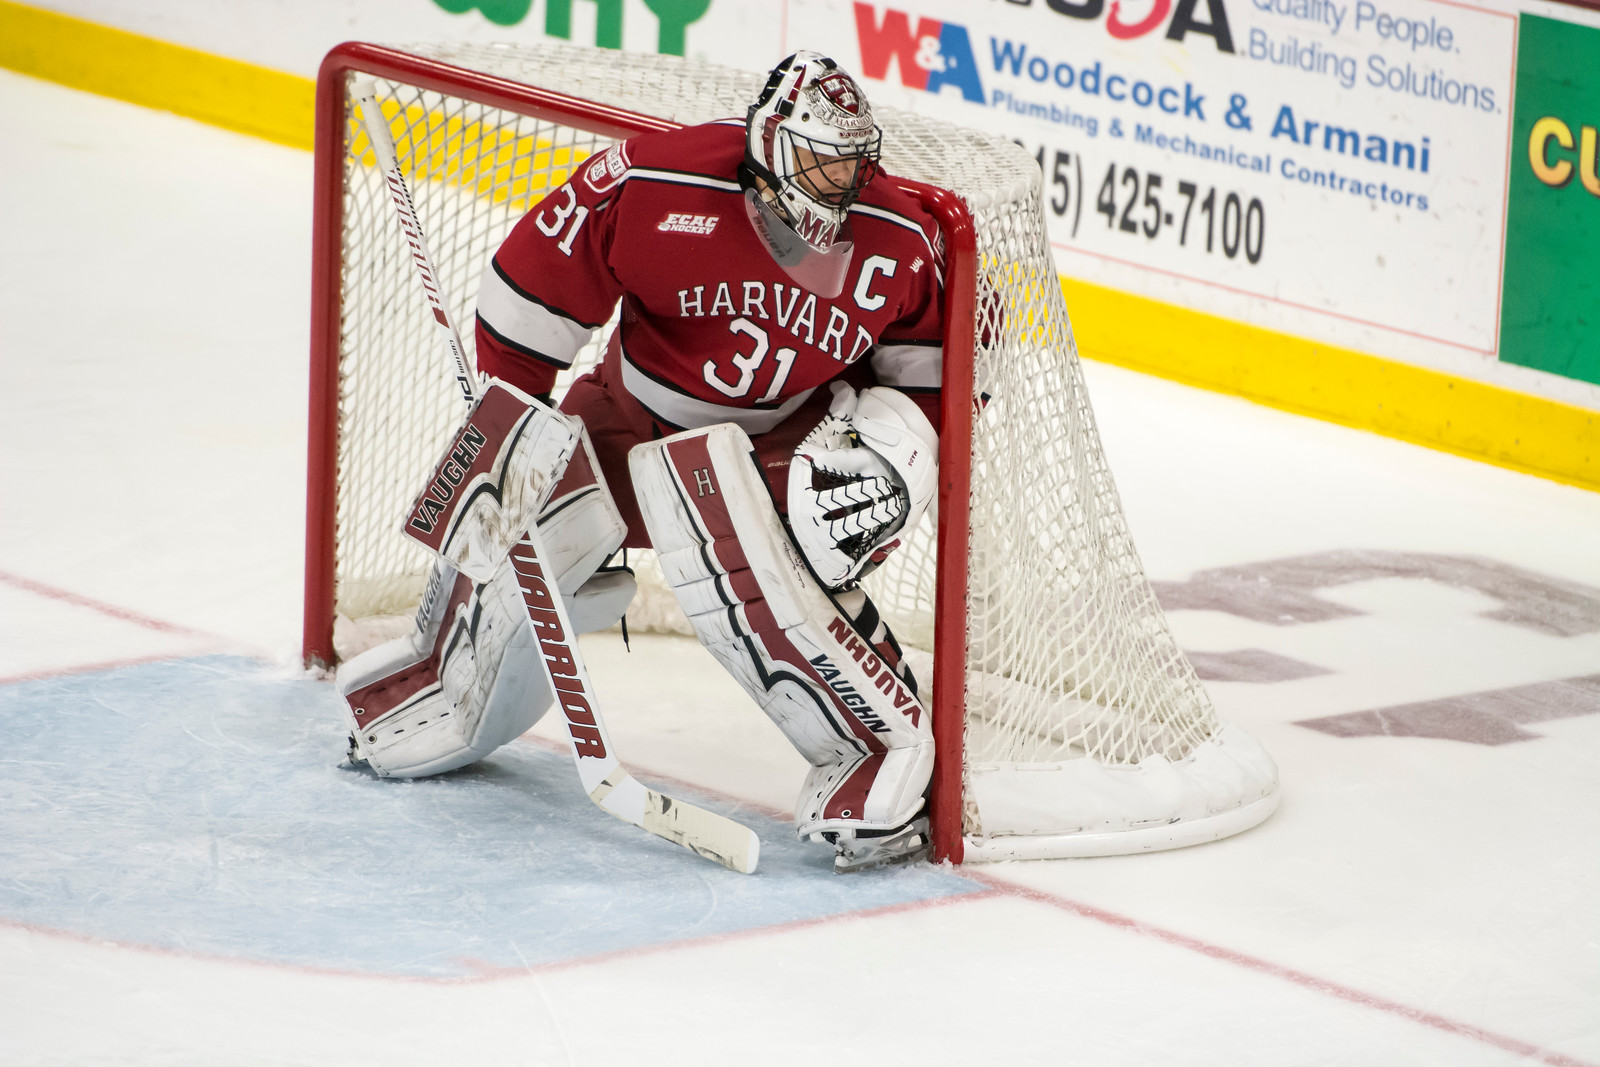 Tri-captain Merrick Madsen earned his starting role back from junior Michael Lackey on Saturday night. Lackey's short but impressive stint as Harvard's starting net-minder proved that the Crimson has multiple viable options between the pipes.